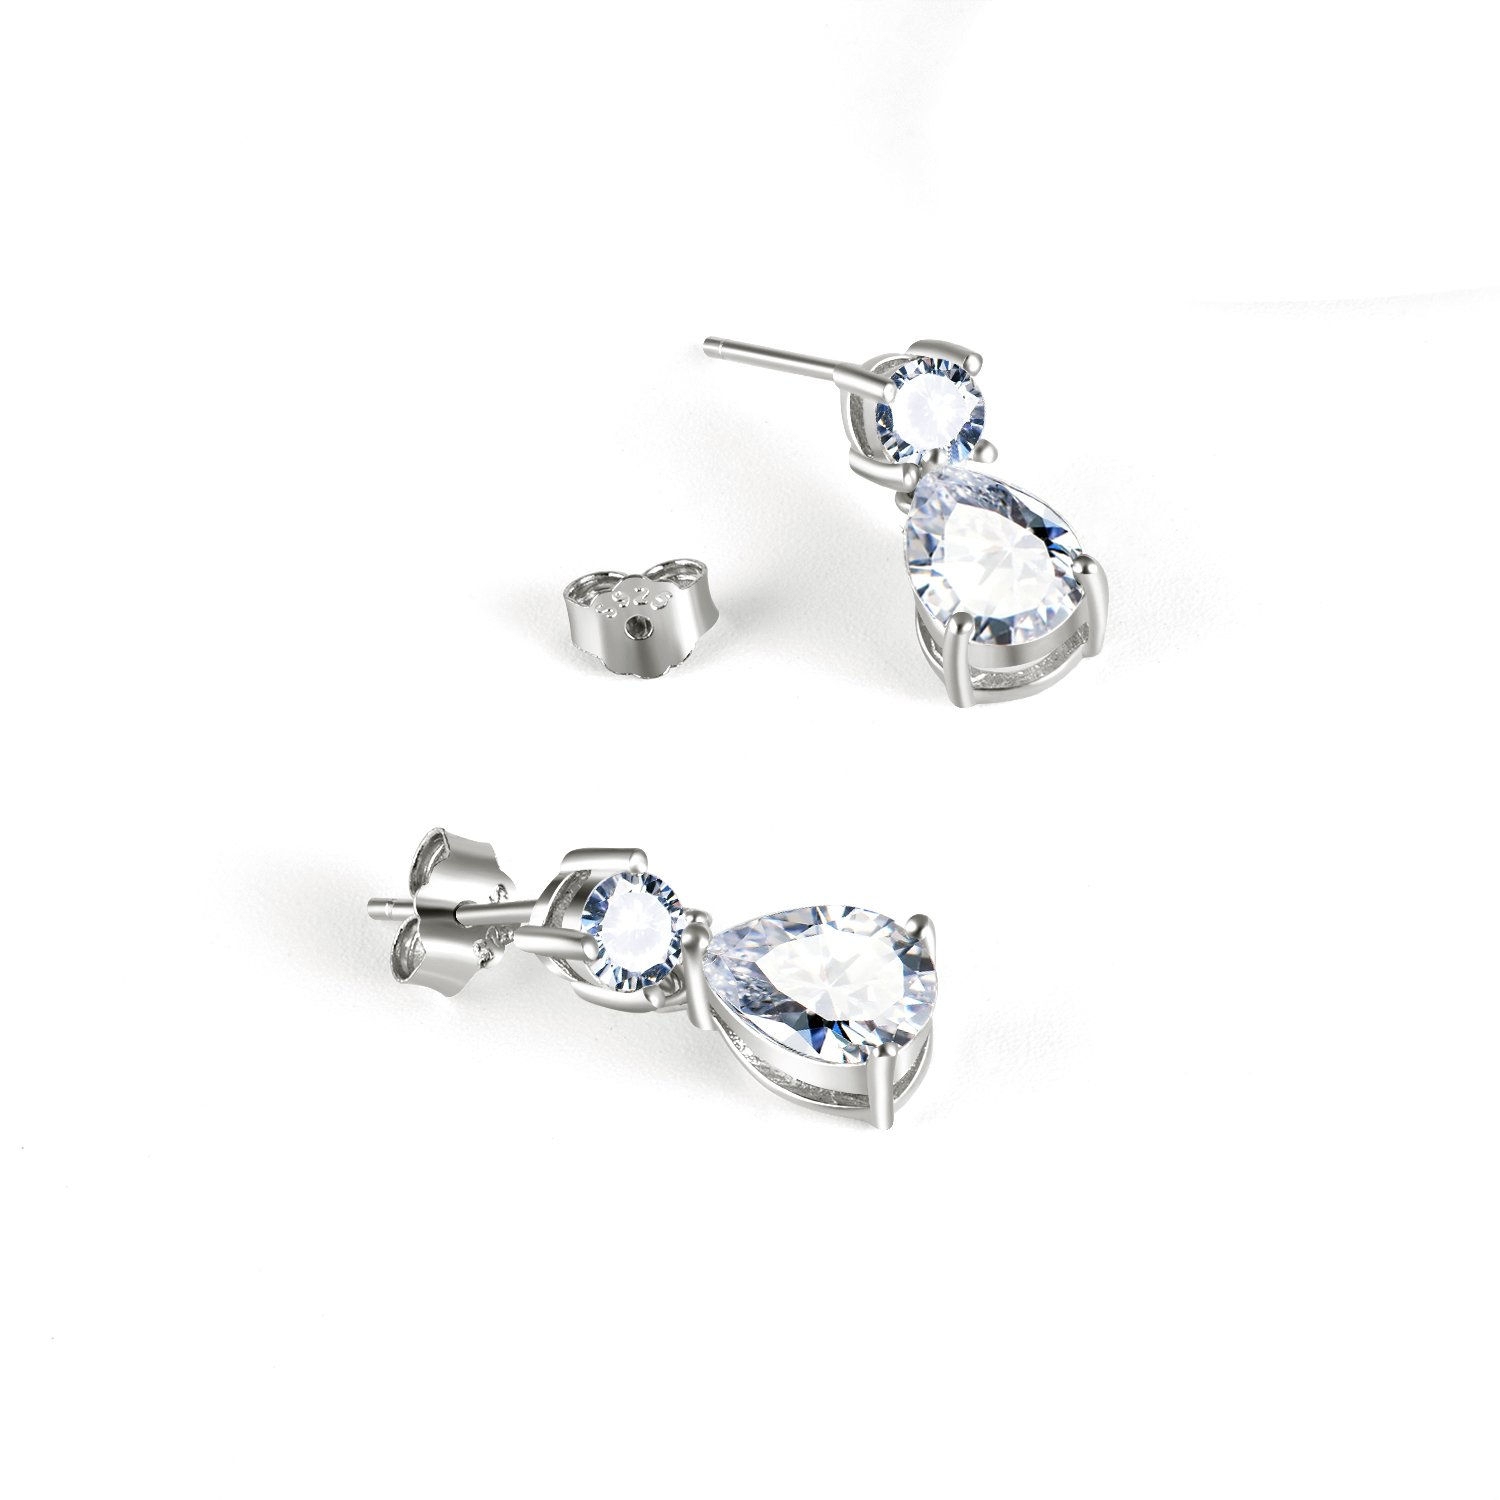 Small Dangle Earrings for Girls Jewelry Gifts Sterling Silver Cubic Zirconia Stud Earring